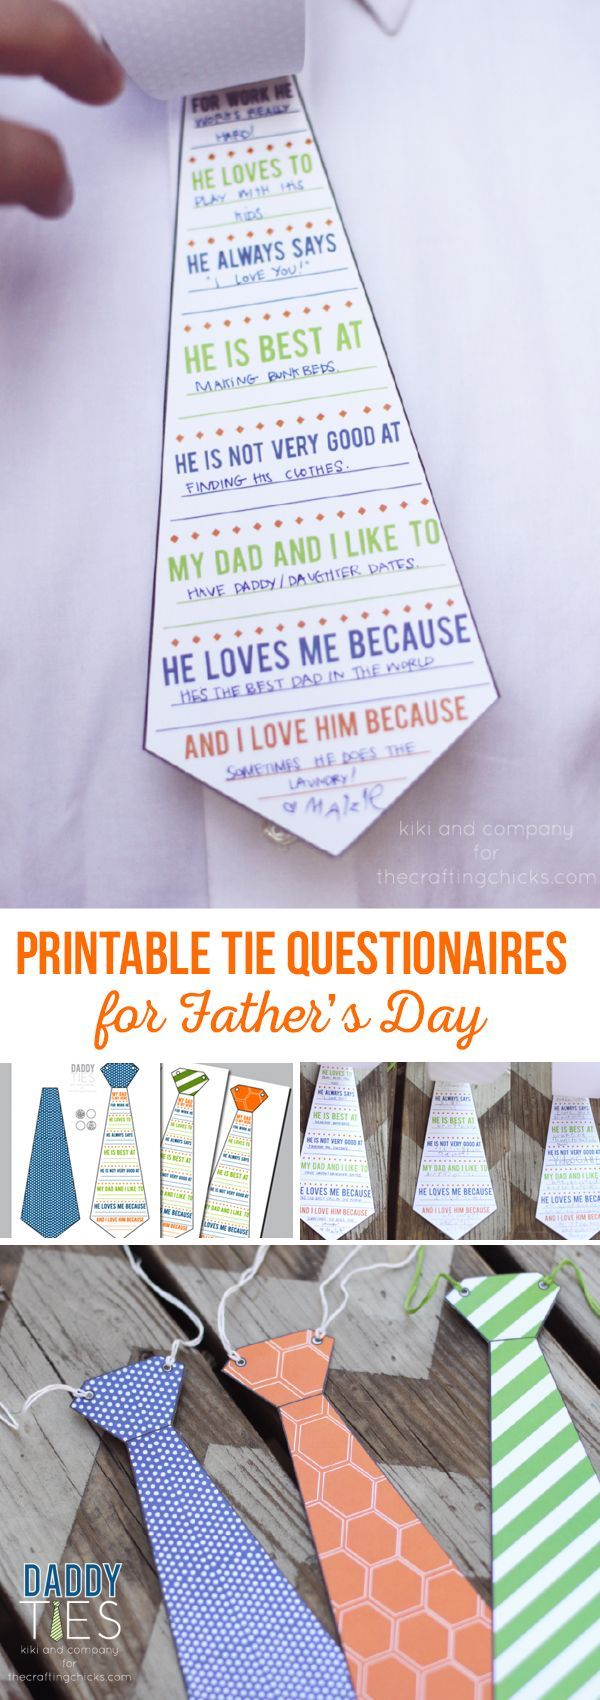 Printable Tie Questionnaires for Father's Day | A fun kids activity for Father's...